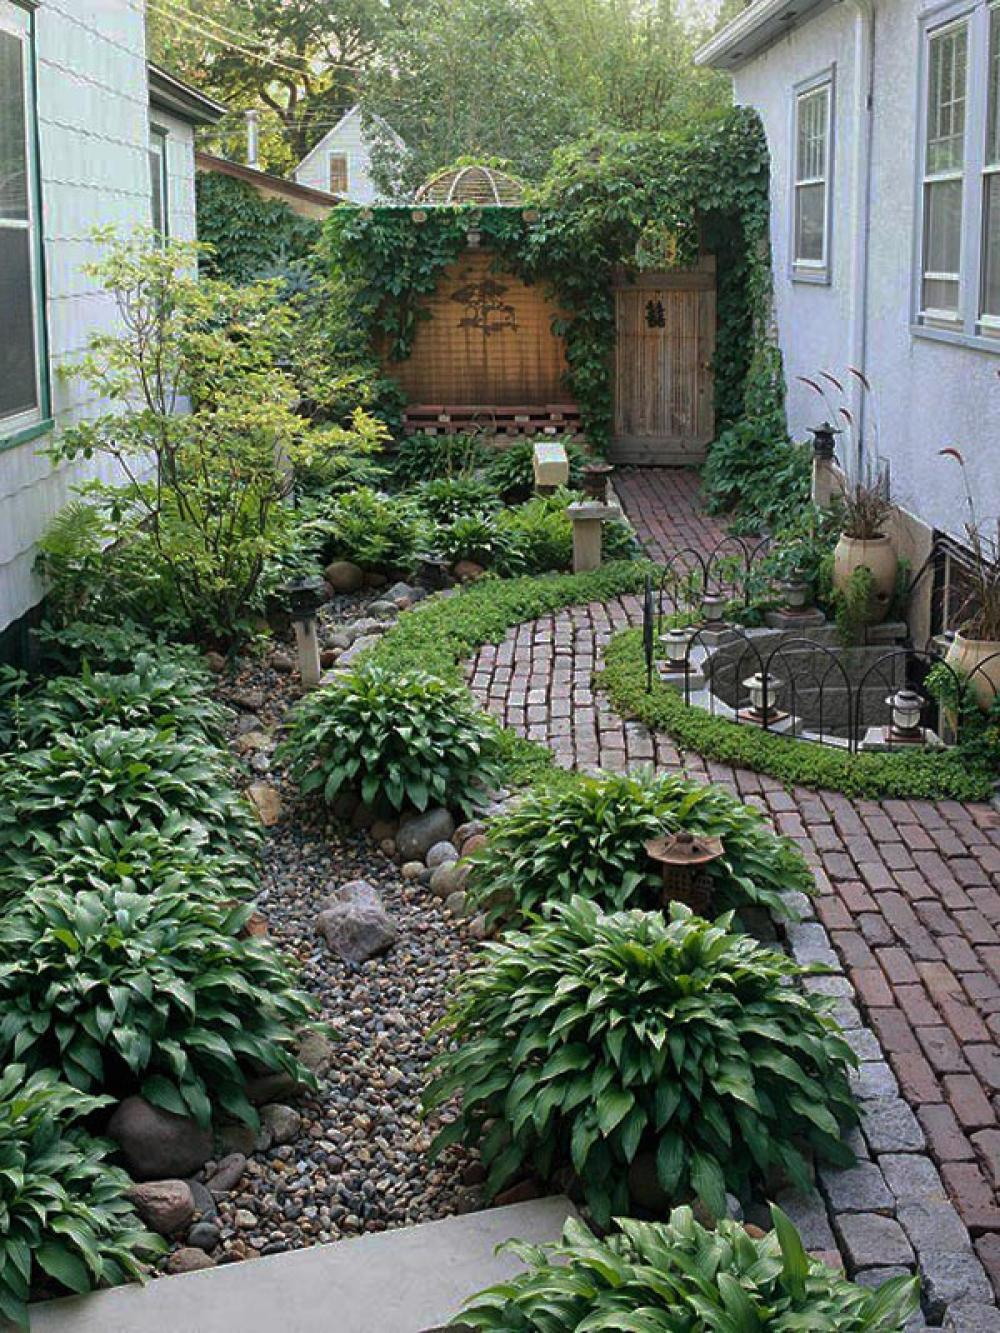 Small garden design in home home and design for Small garden design plans ideas